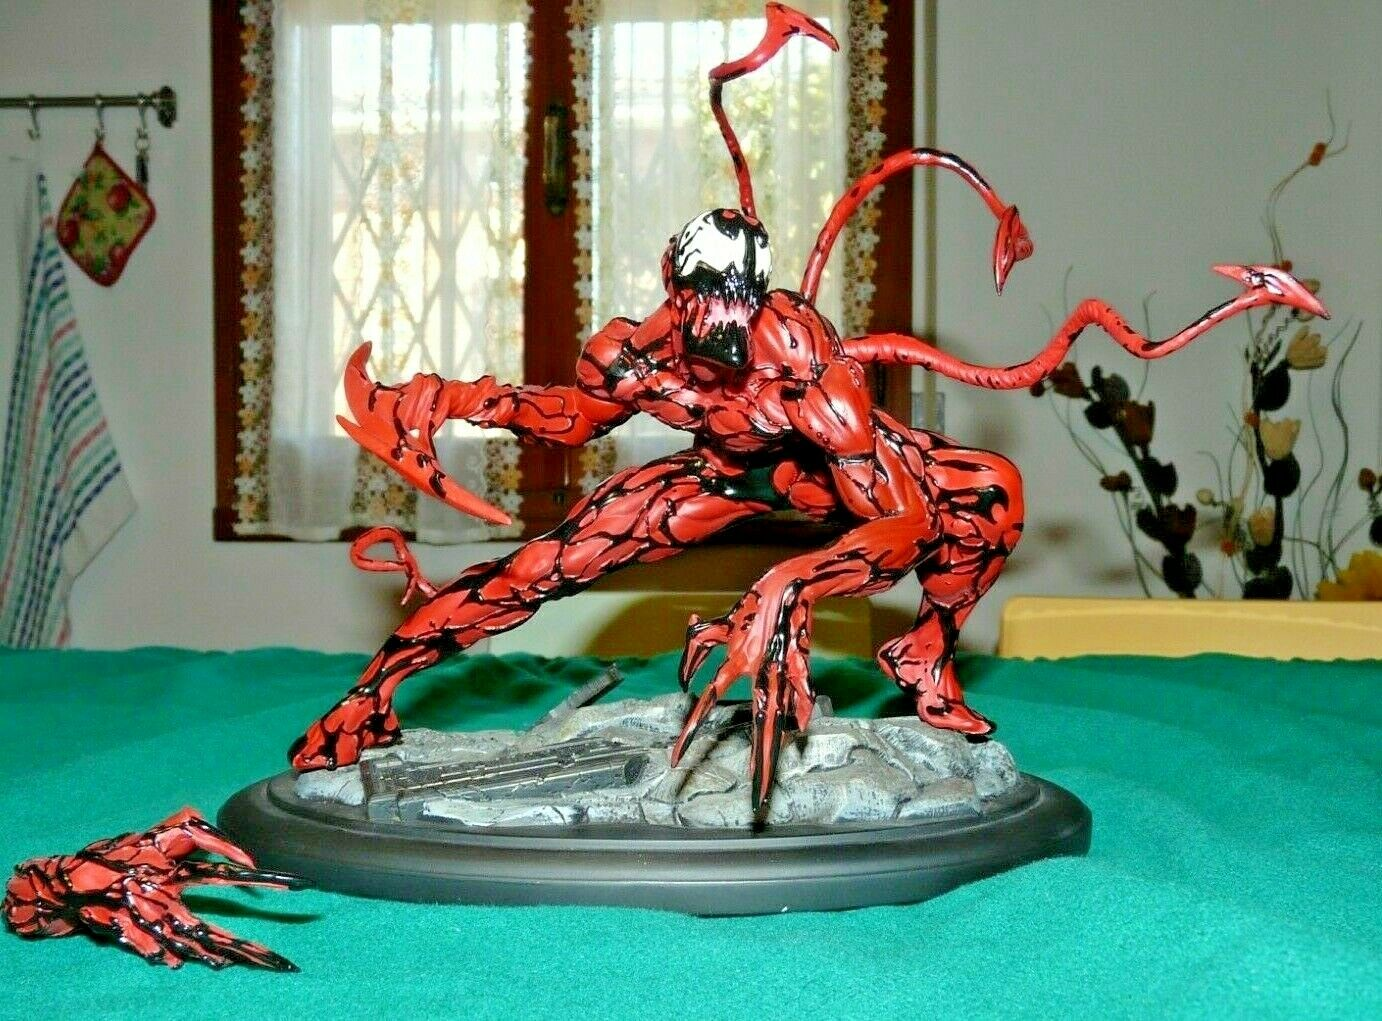 CARNAGE FINE ART STATUE KOTOBUKIYA COLLECTION STATUA NUMERATA LIMITATA NO VENOM